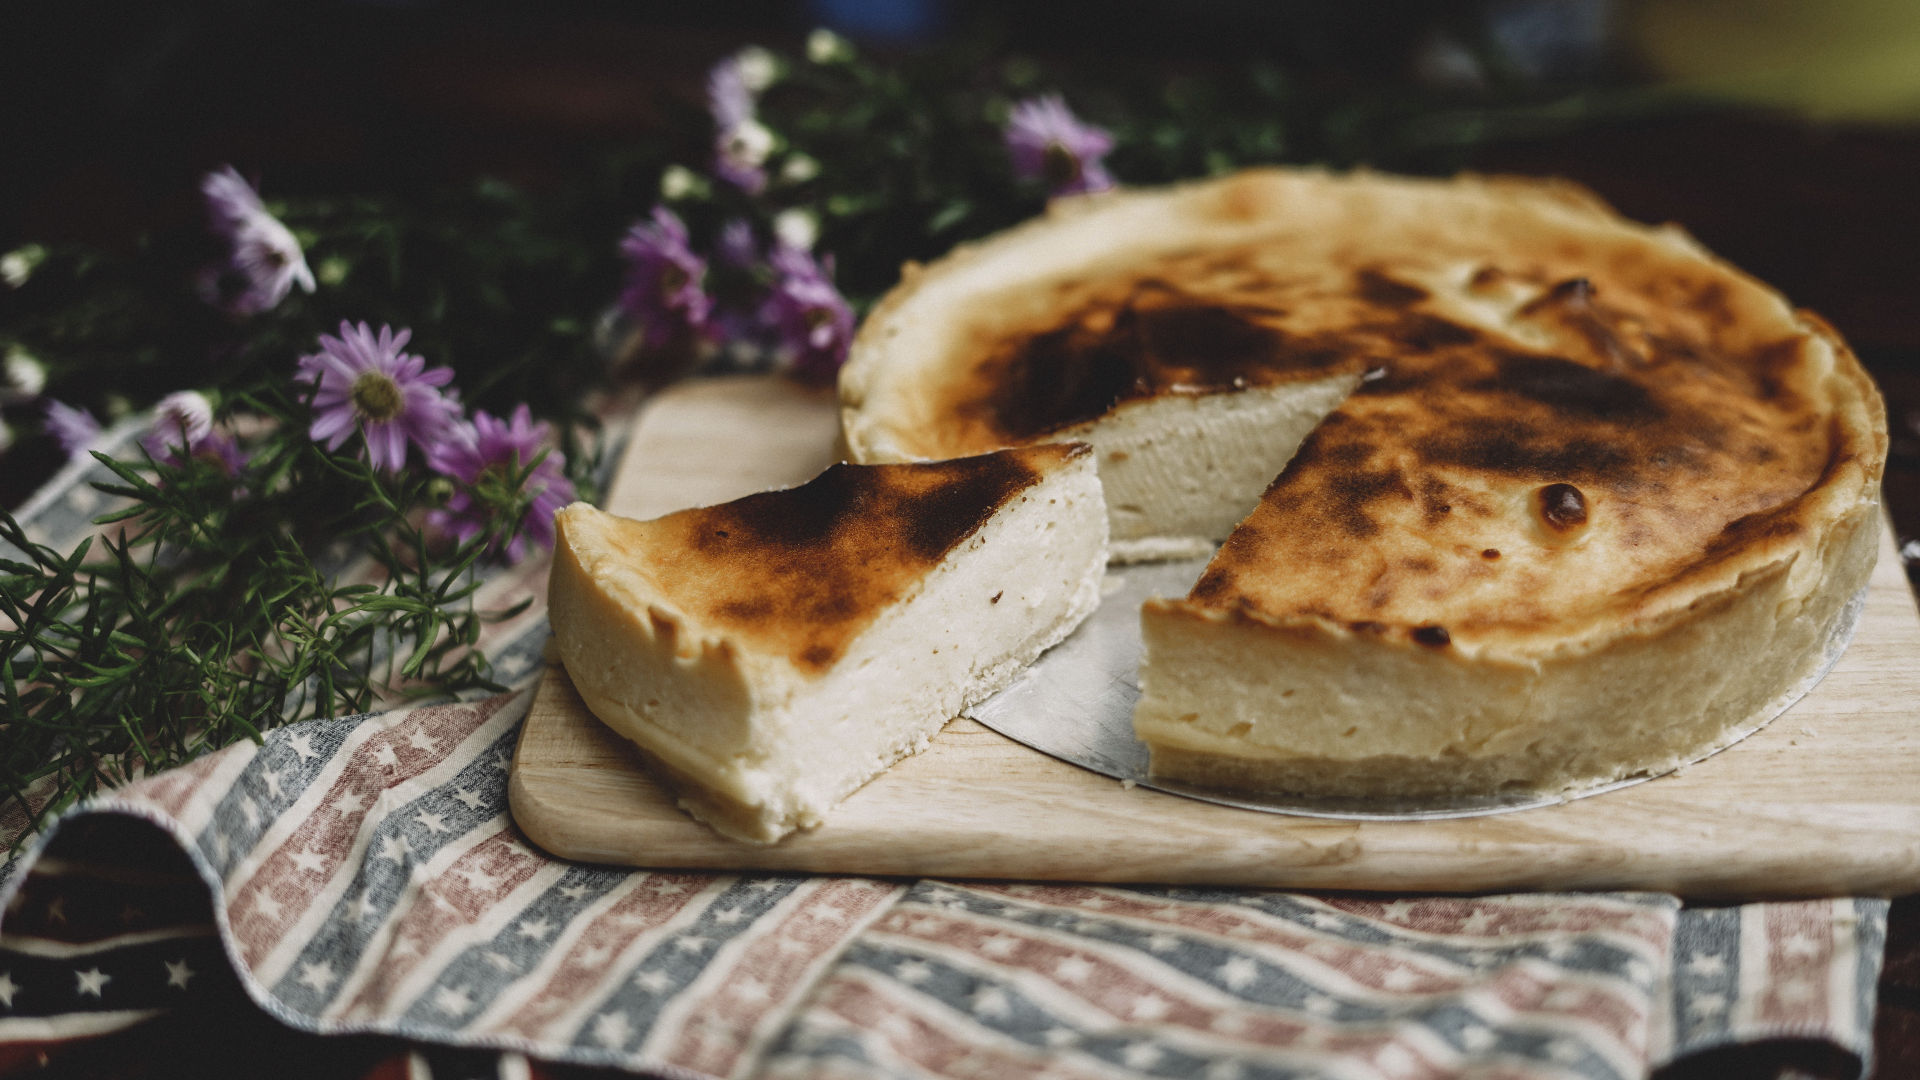 Sharing the pie. Photo credit: Chinh Le Duc on Unsplash.